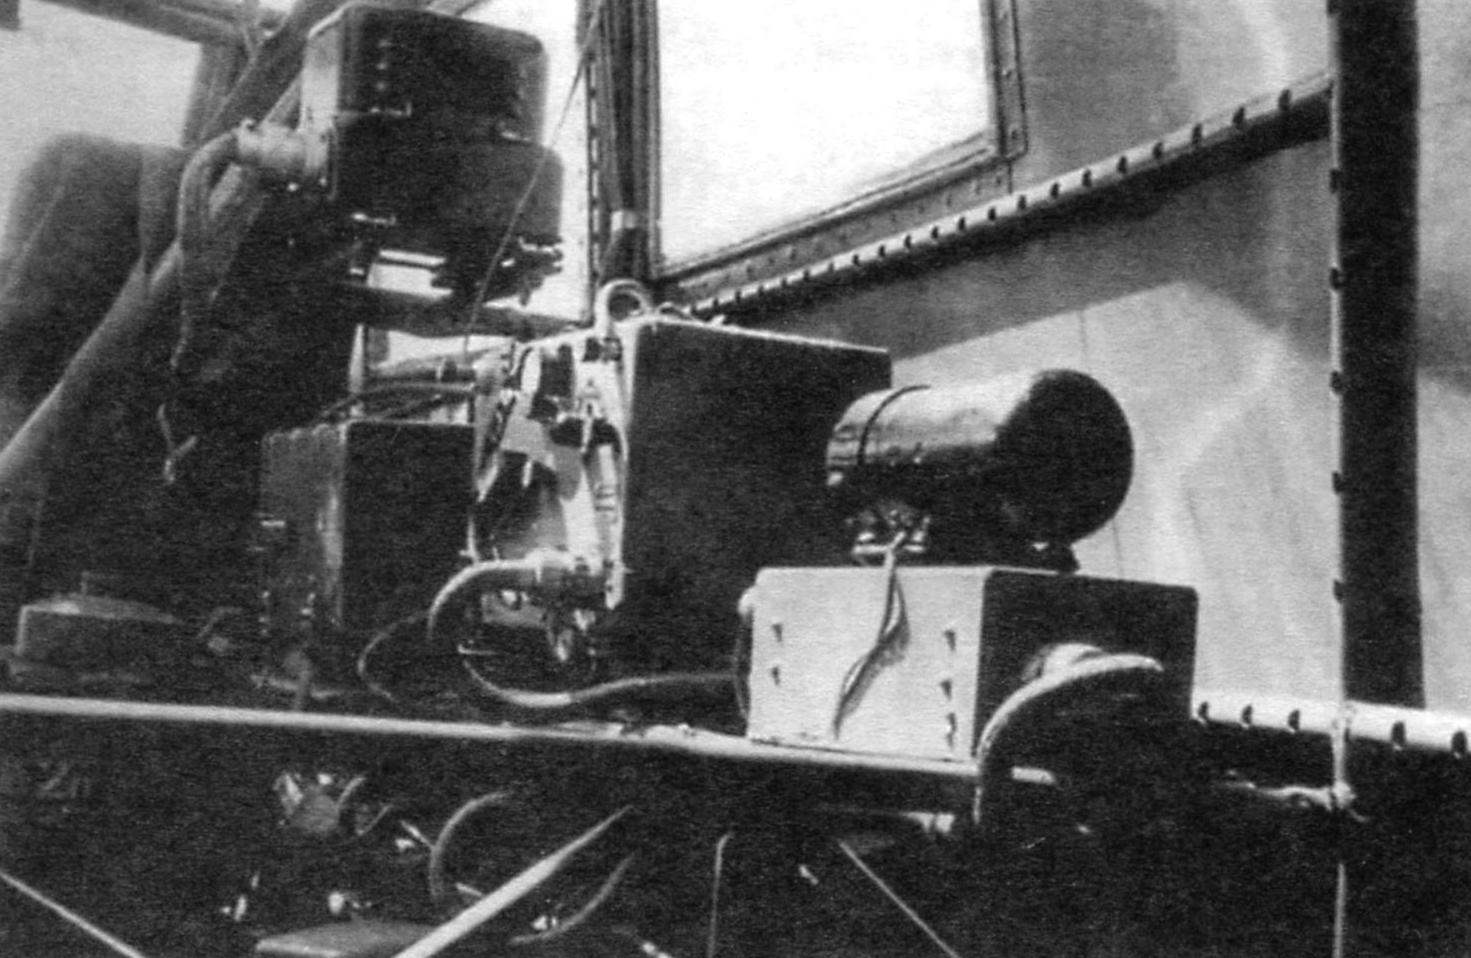 Electro - and radio equipment, located behind the right seat pilot